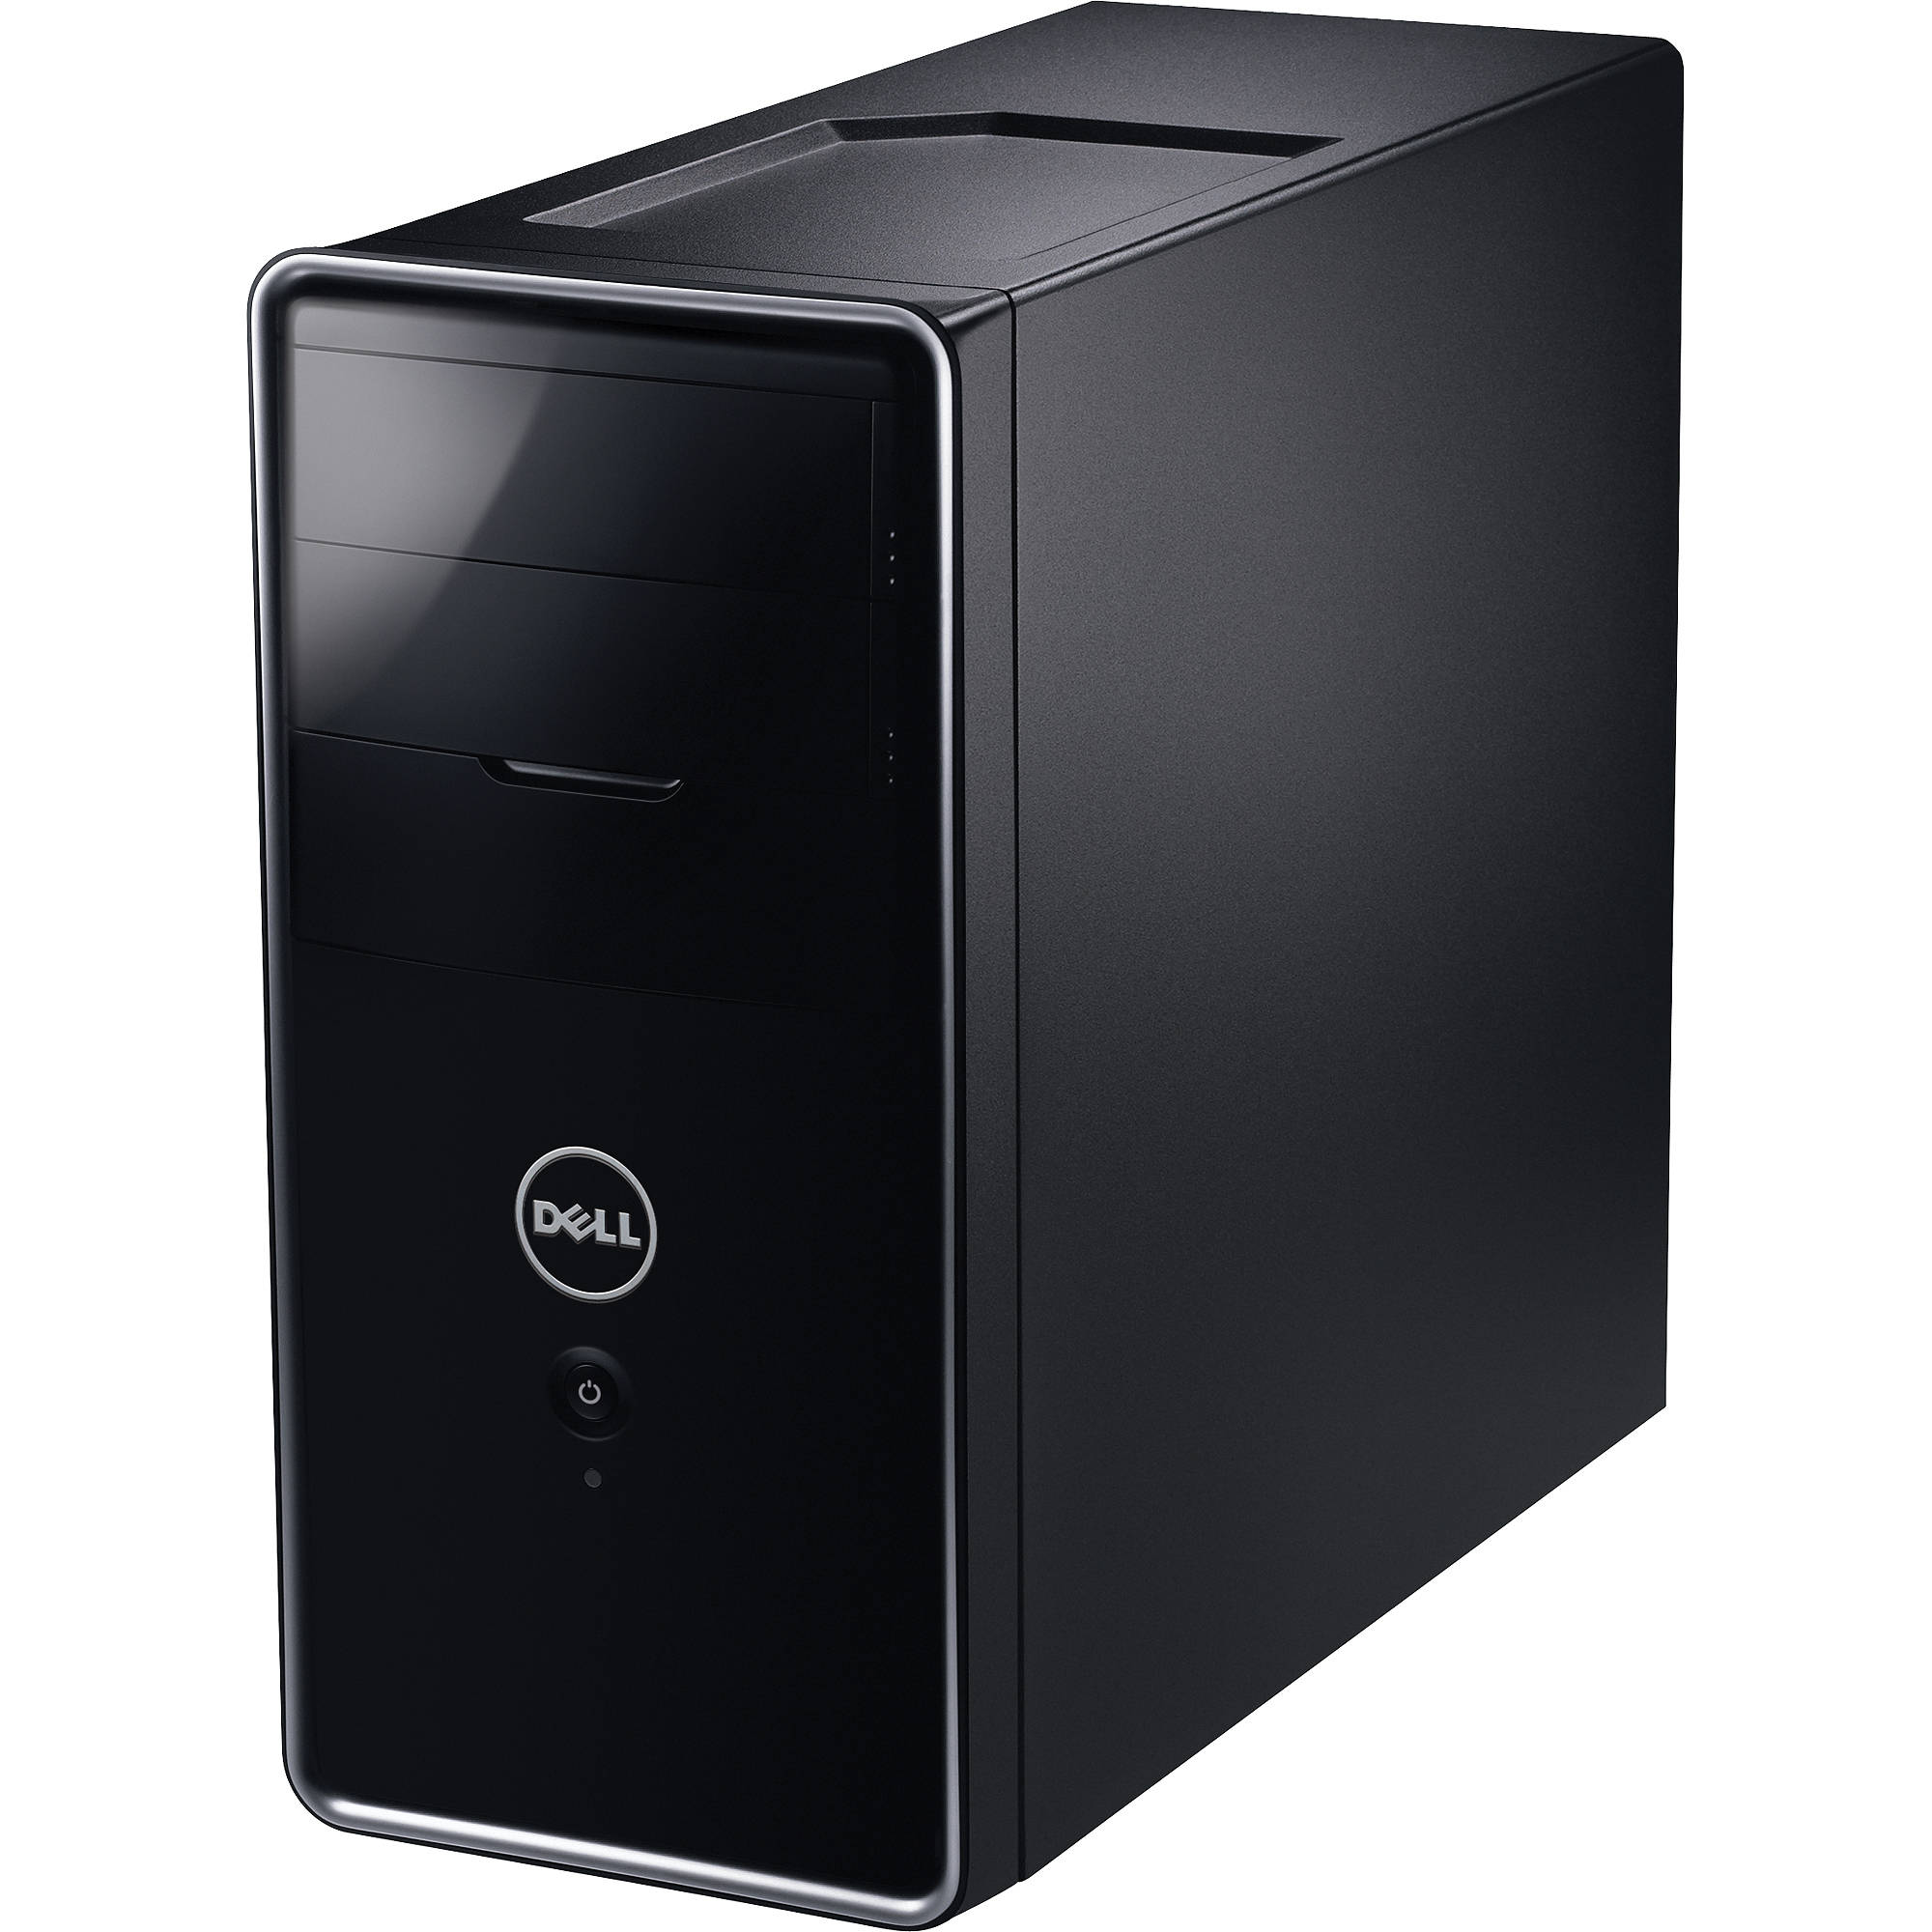 dell inspiron 620 i620 6783bk desktop computer i620 6783bk b h. Black Bedroom Furniture Sets. Home Design Ideas